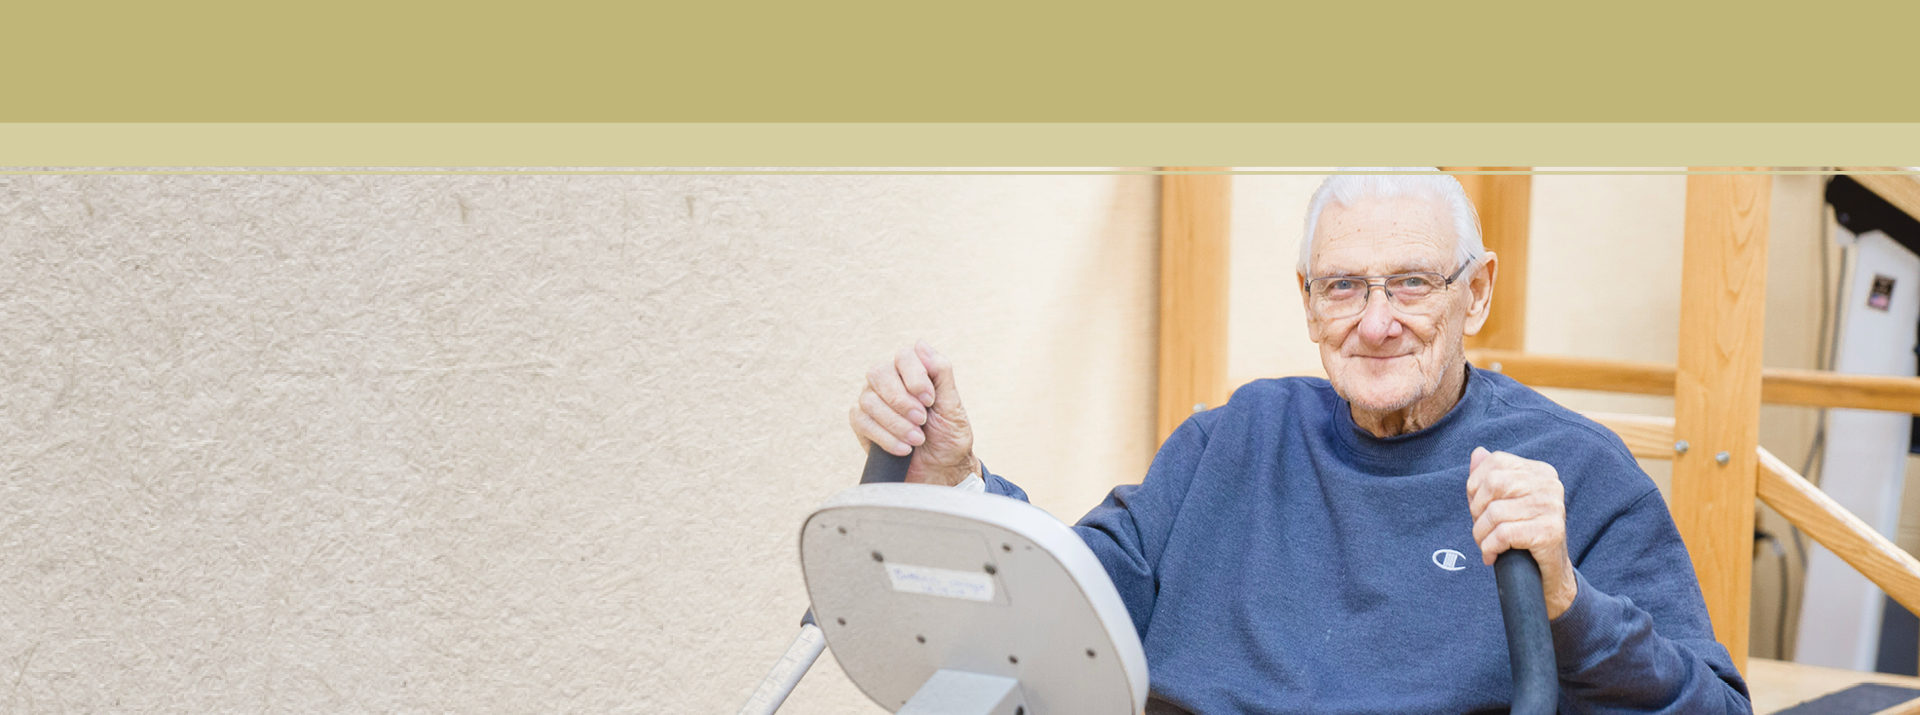 We pride ourselves on the quality of rehabilitation provided to our residents